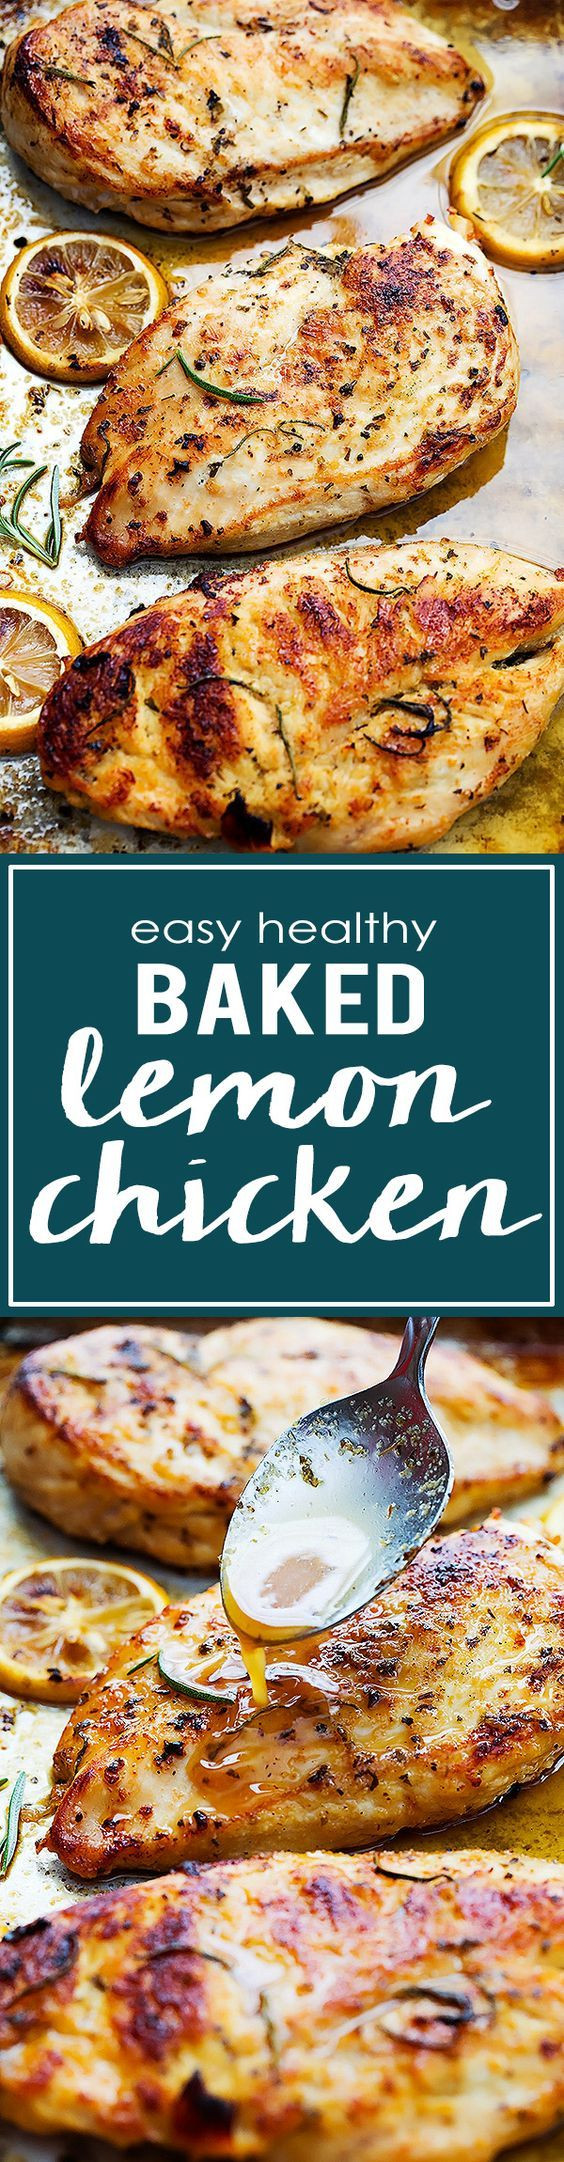 Easy Healthy Baked Chicken Recipes  Easy Healthy Baked Lemon Chicken Recipe